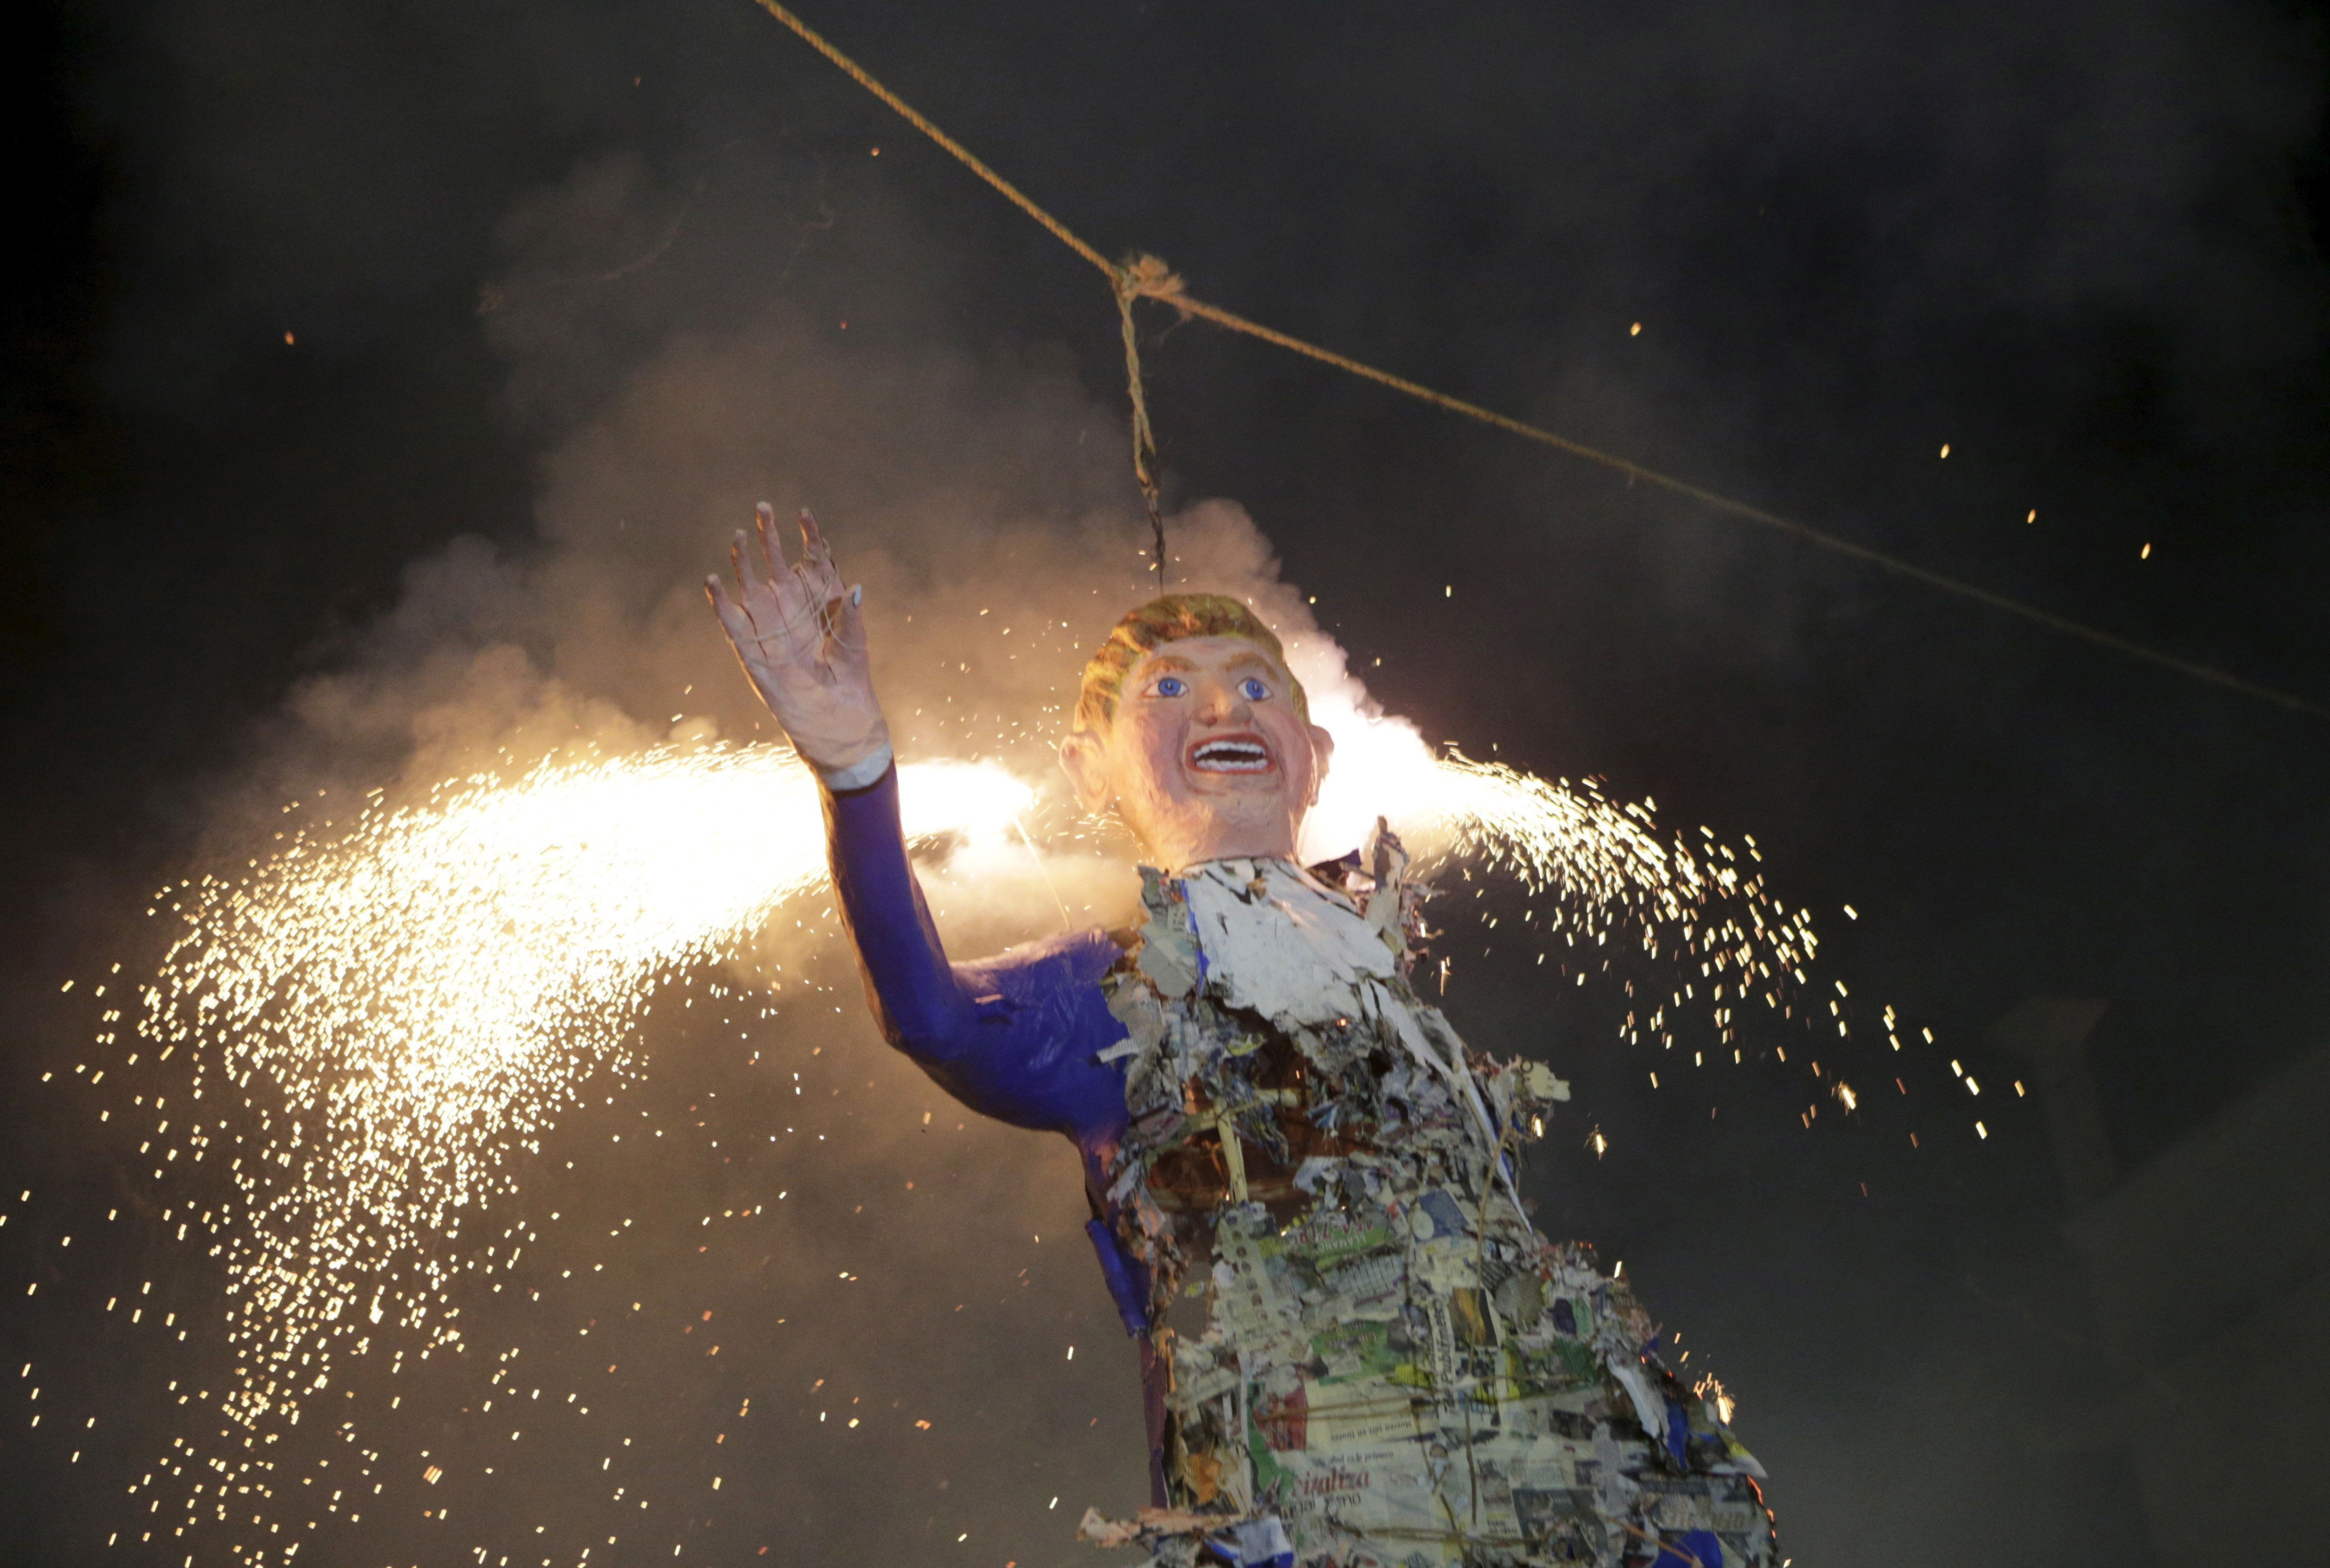 Mexicans burn an effigy of U.S. Republican presidential hopeful Donald Trump as they celebrate an Easter ritual late on Saturday in Mexico City's poor La Merced neighborhood March 26, 2016. REUTERS/Henry Romero